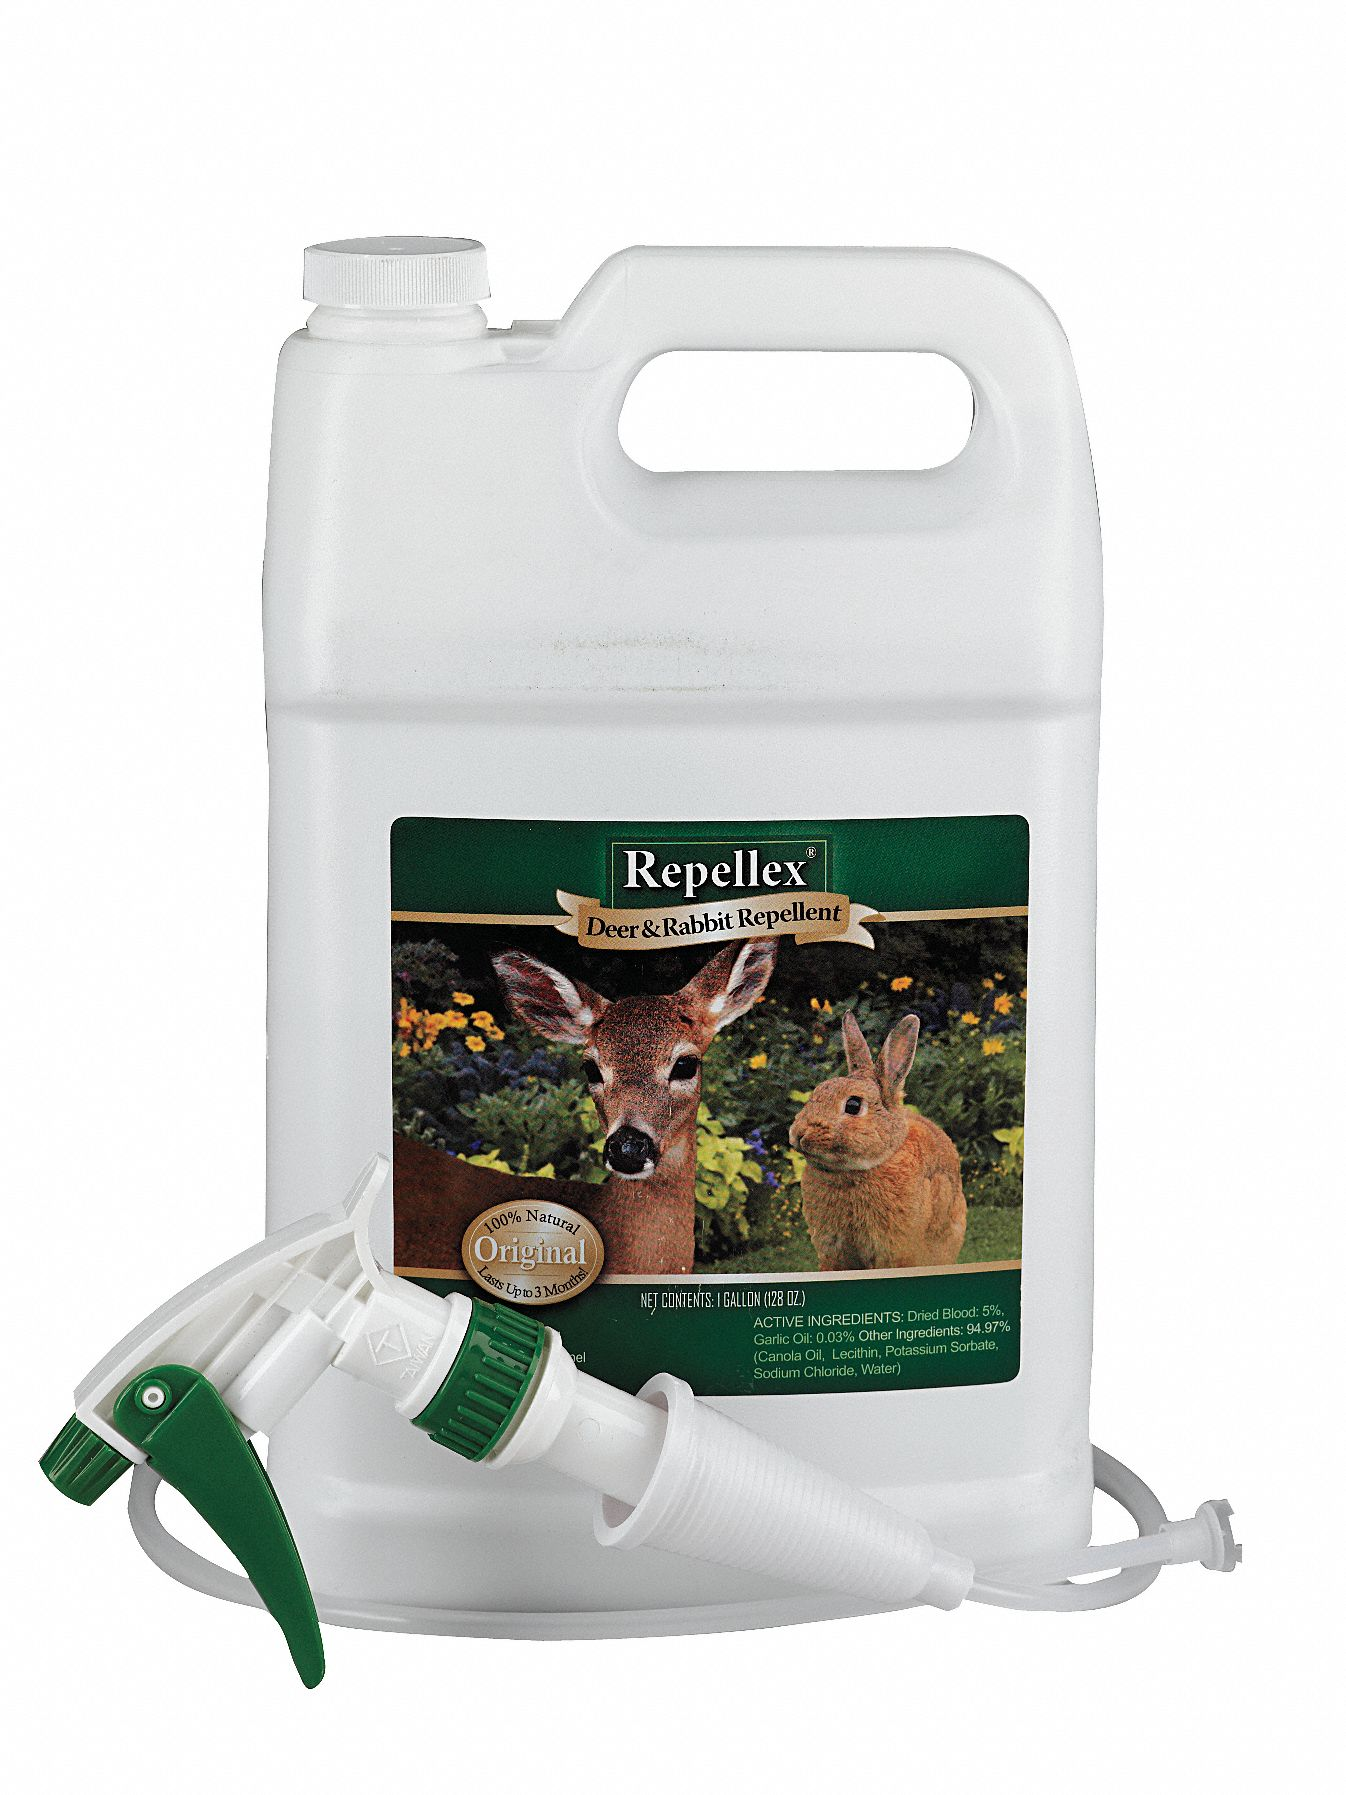 Deer/Rabbit Repellent, Used For Animal Control